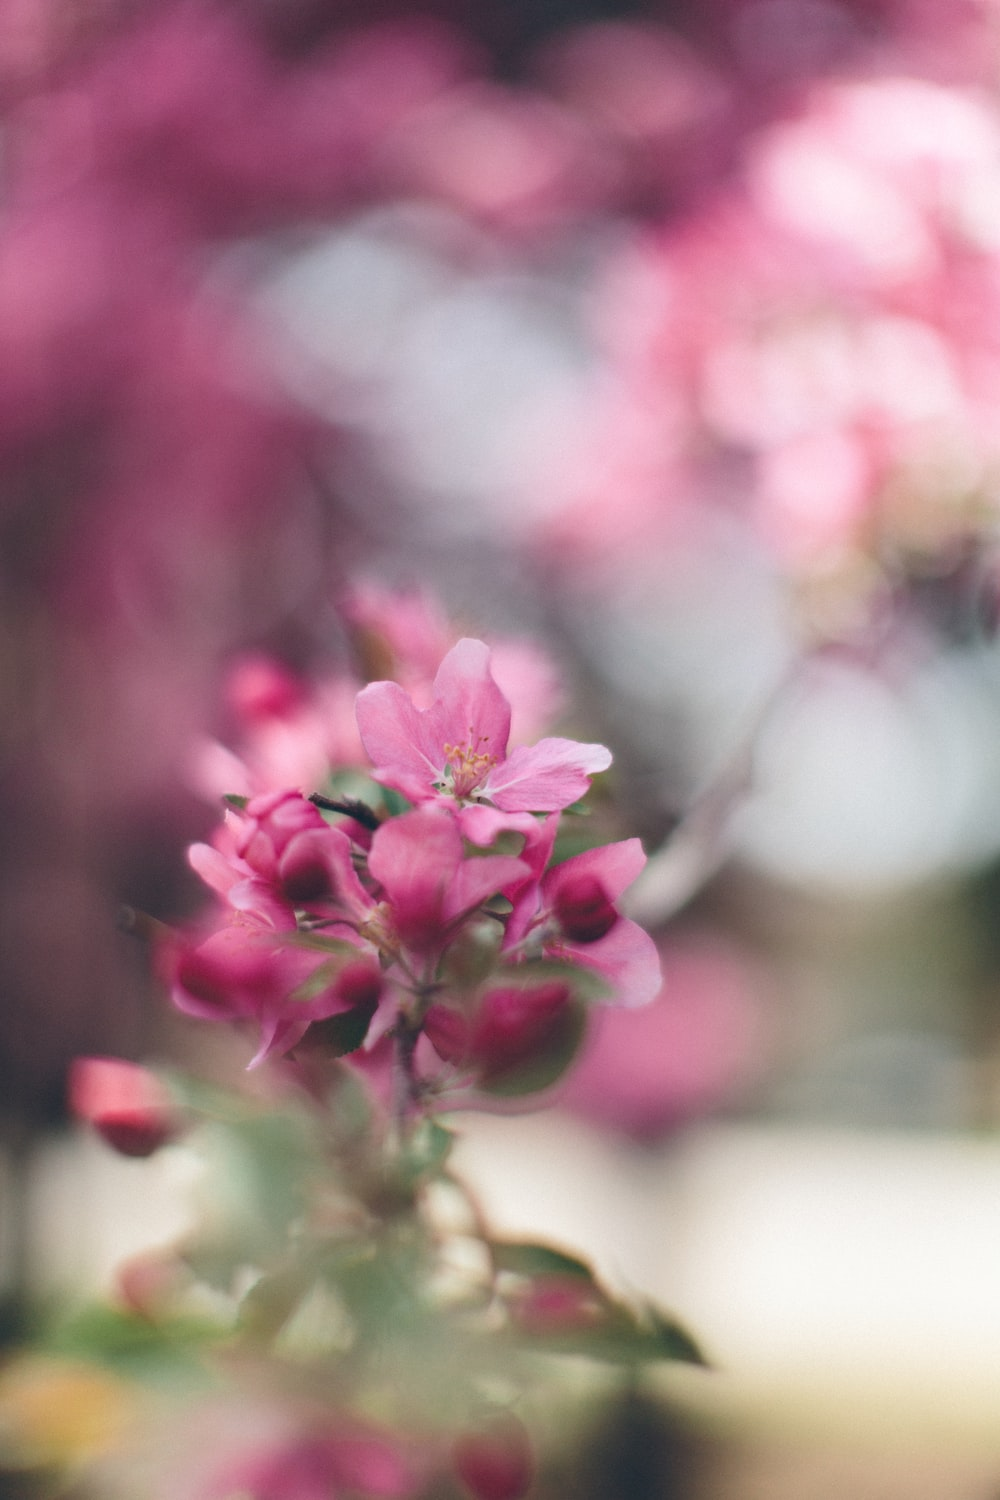 pink petaled flower selective focus photography